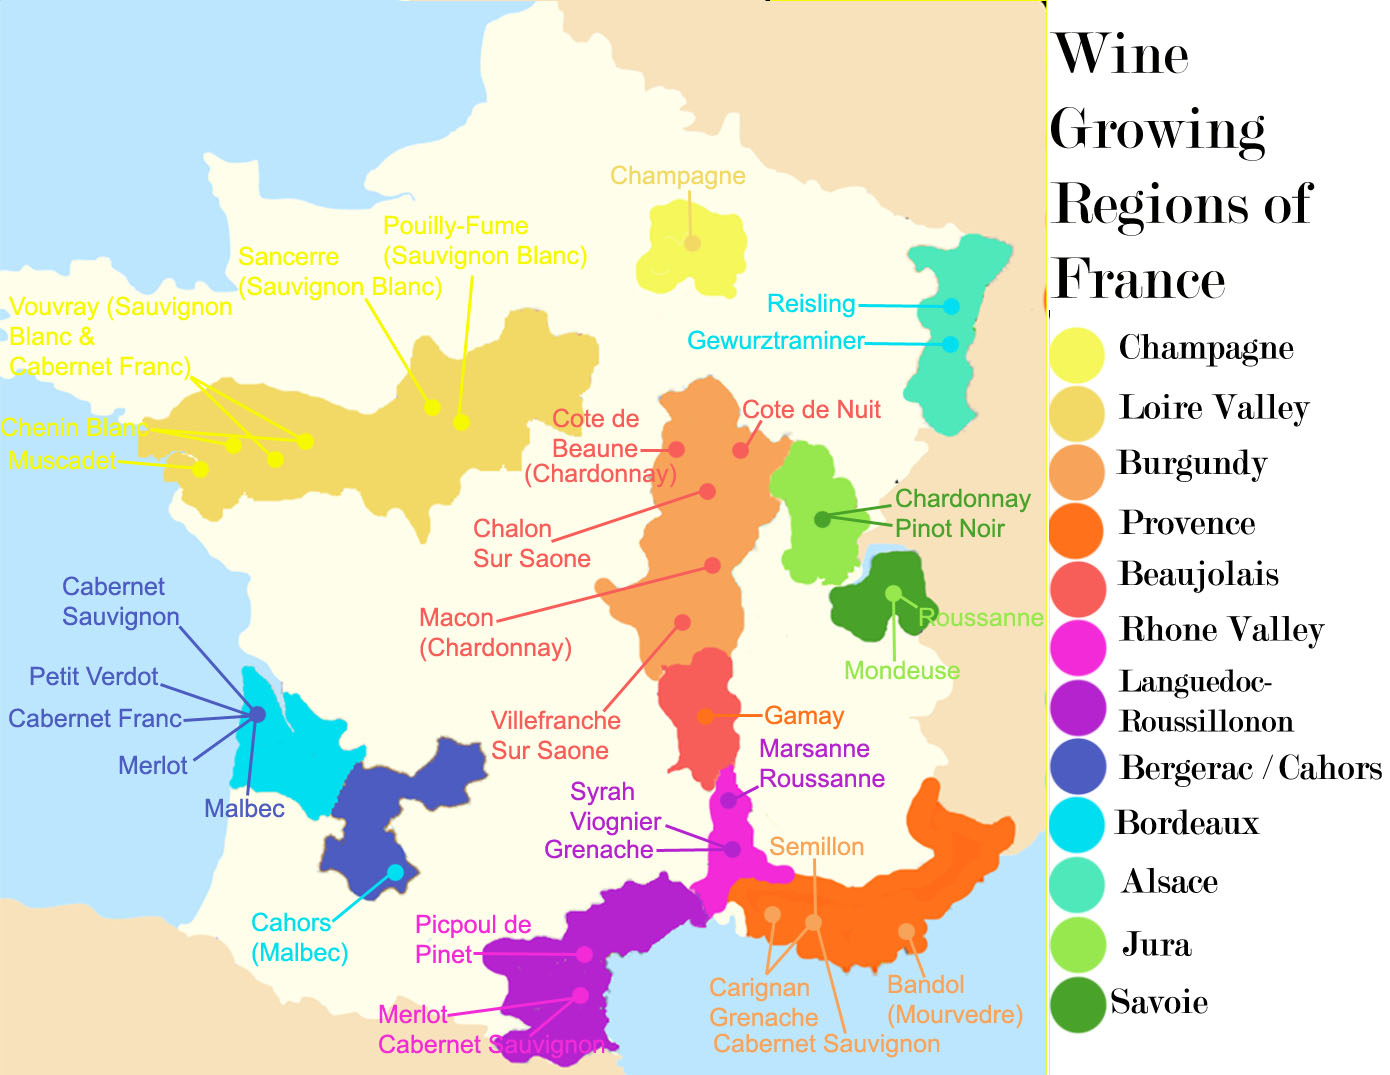 No wonder no one likes the French Forget Burgundy